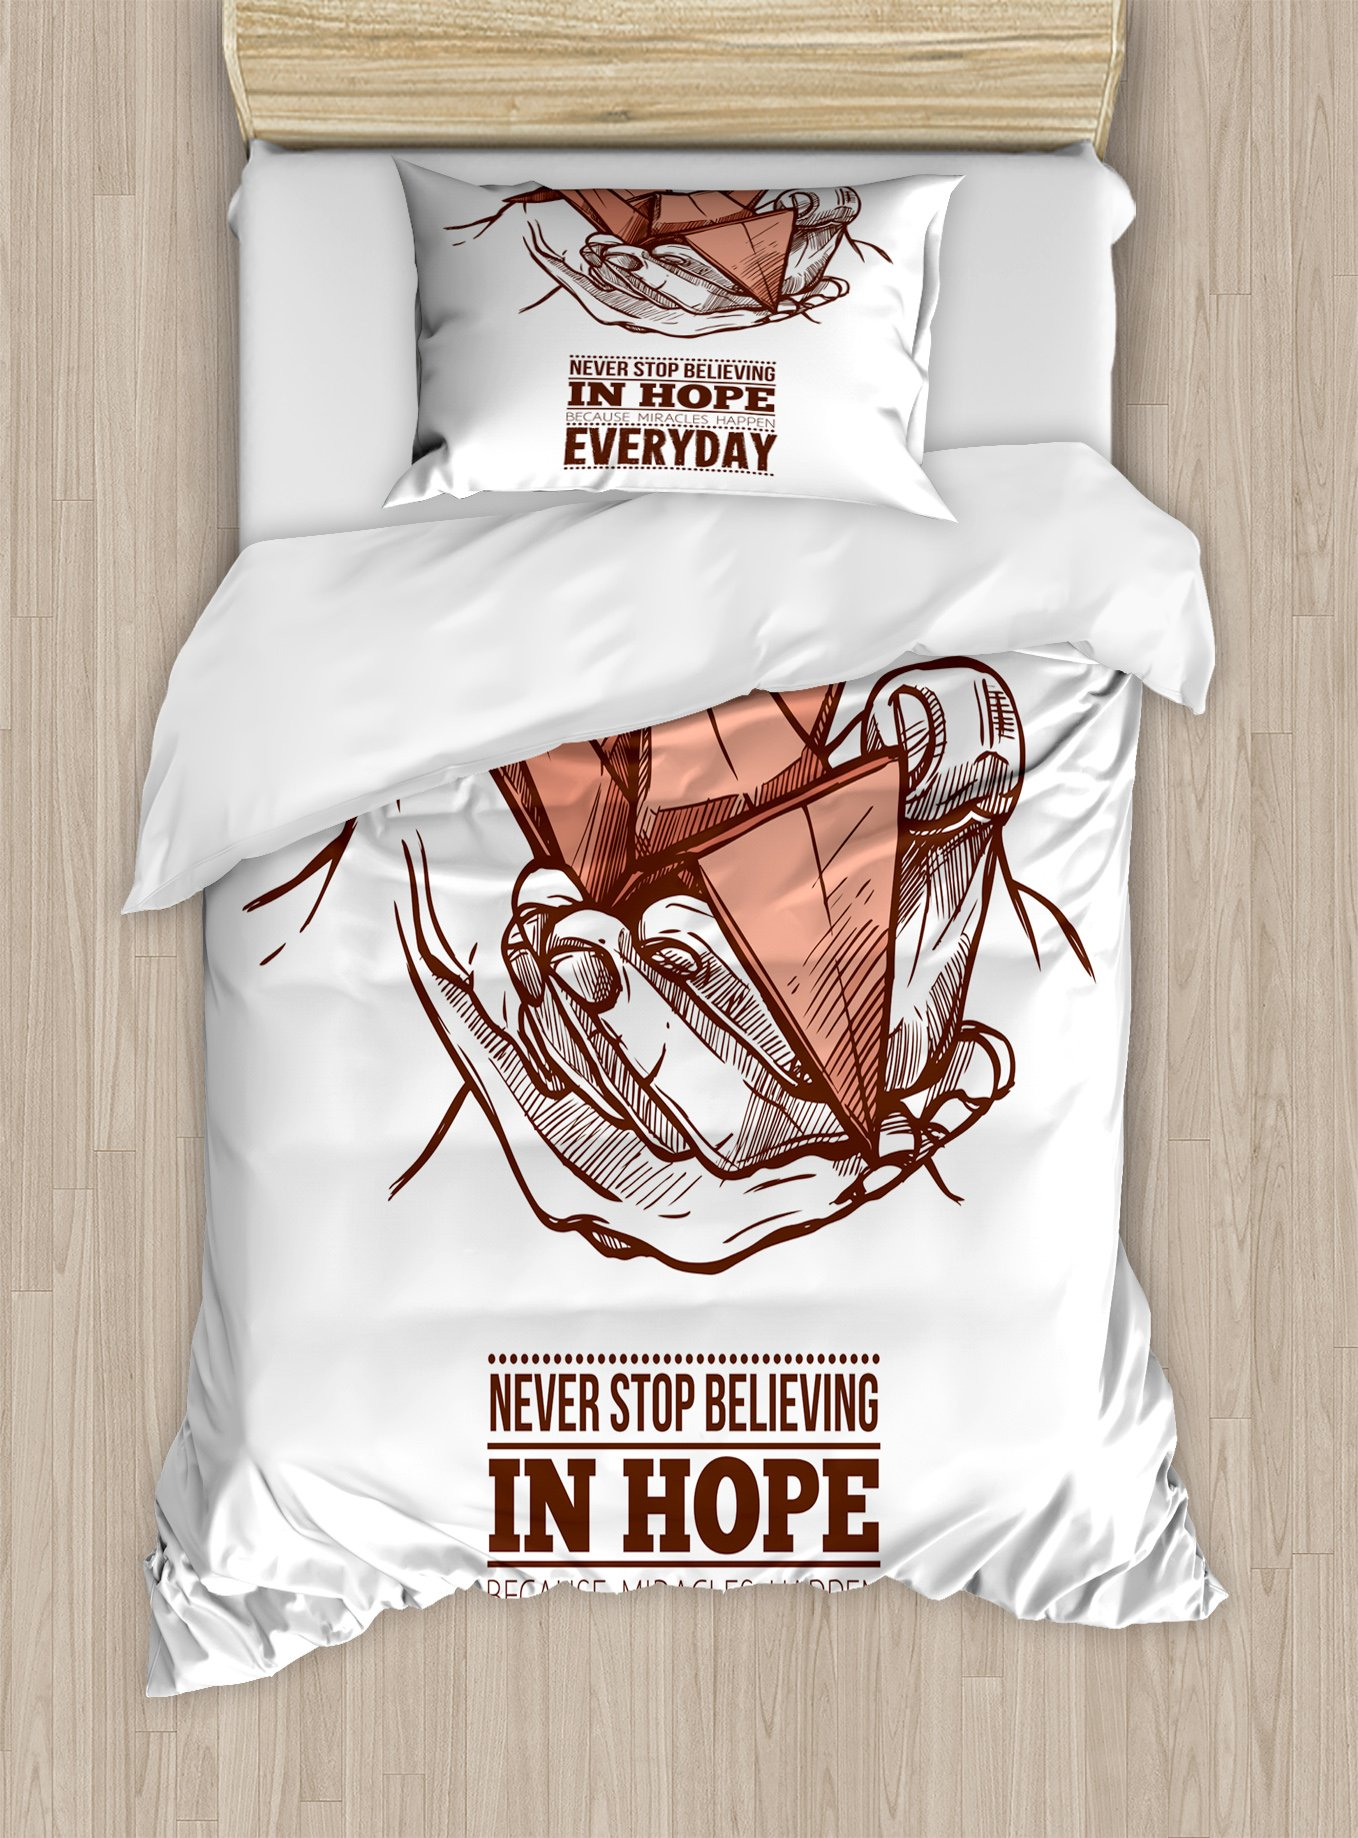 Ambesonne Hope Twin Size Duvet Cover Set, Hands Holding an Origami Crane with a Miracles Happen Everyday Quote, Decorative 2 Piece Bedding Set with 1 Pillow Sham, Pale Orange Brown White